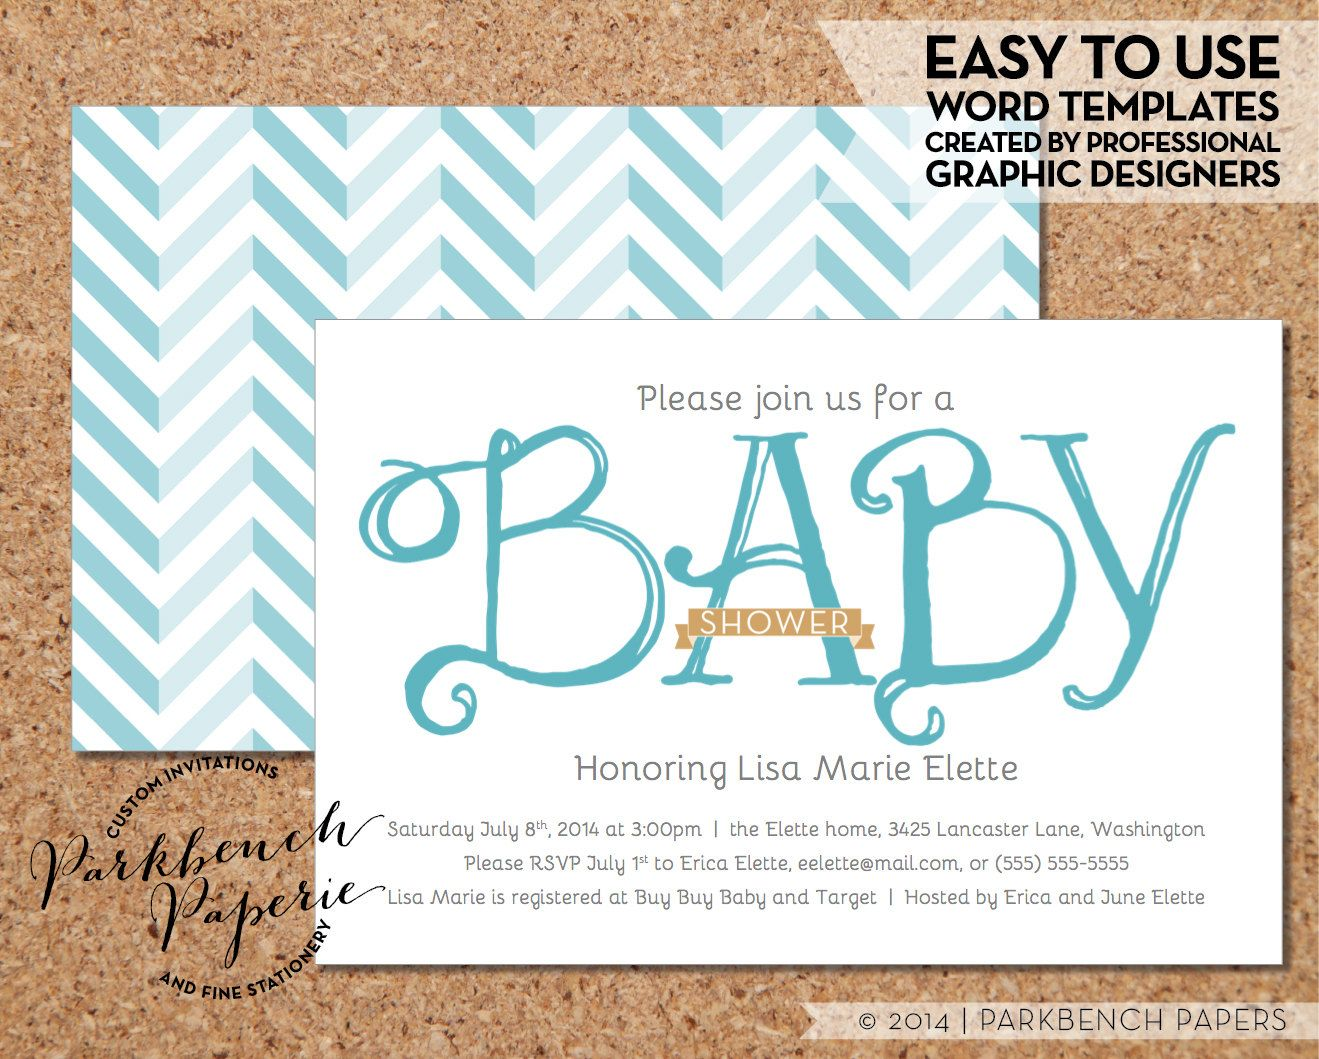 Baby Shower Invitations For Word Templates Enchanting Baby Shower Invitation  Blue Ribbon  Diy Editable Word Template .